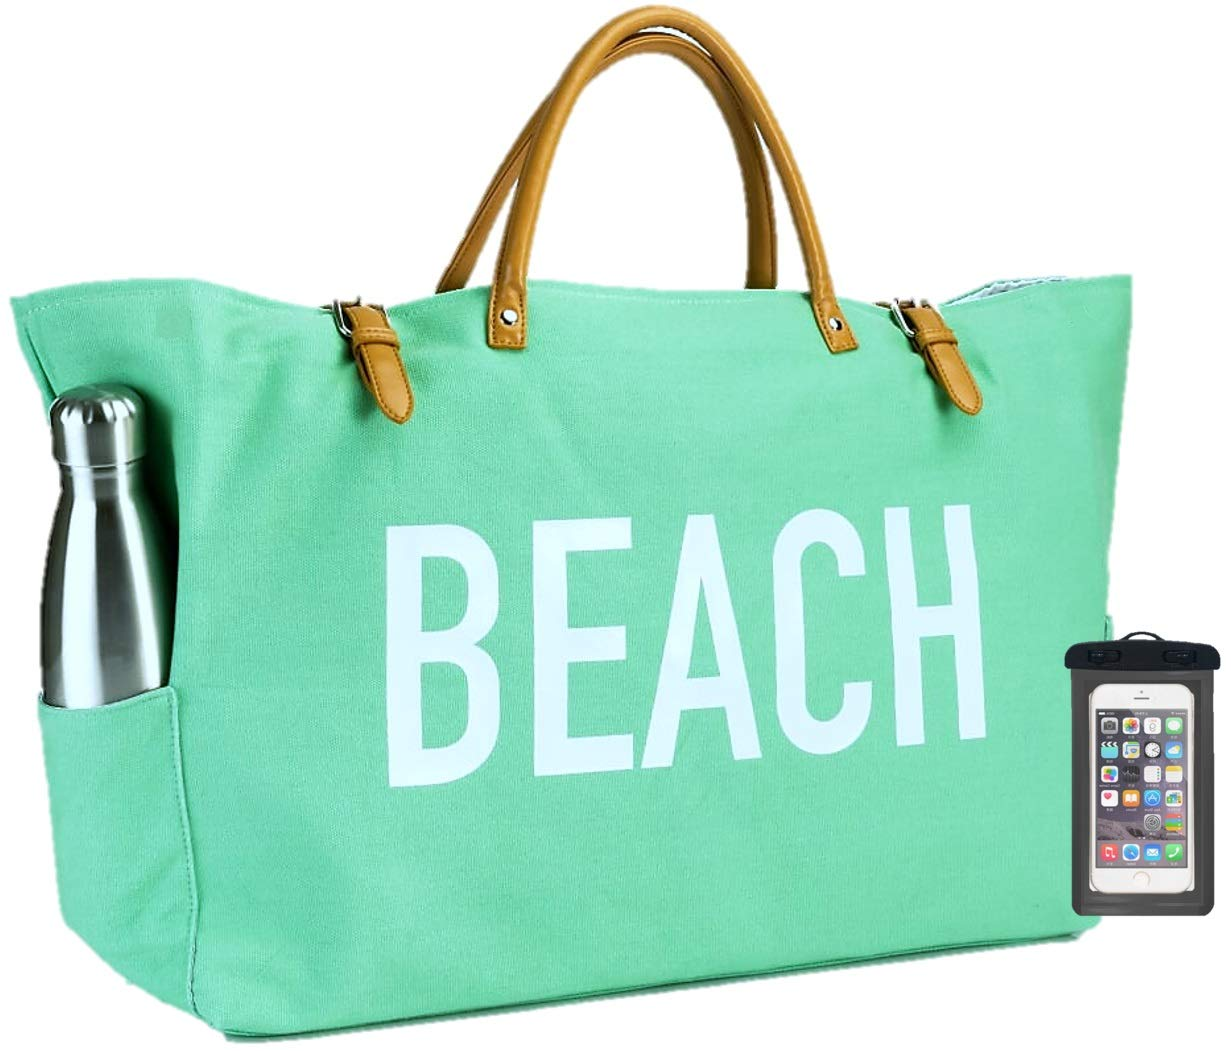 (New) PACO Large Canvas Beach Bag Travel Tote (Seafoam Green), Waterproof Lining, 3 Large Pockets, FREE Phone Case …